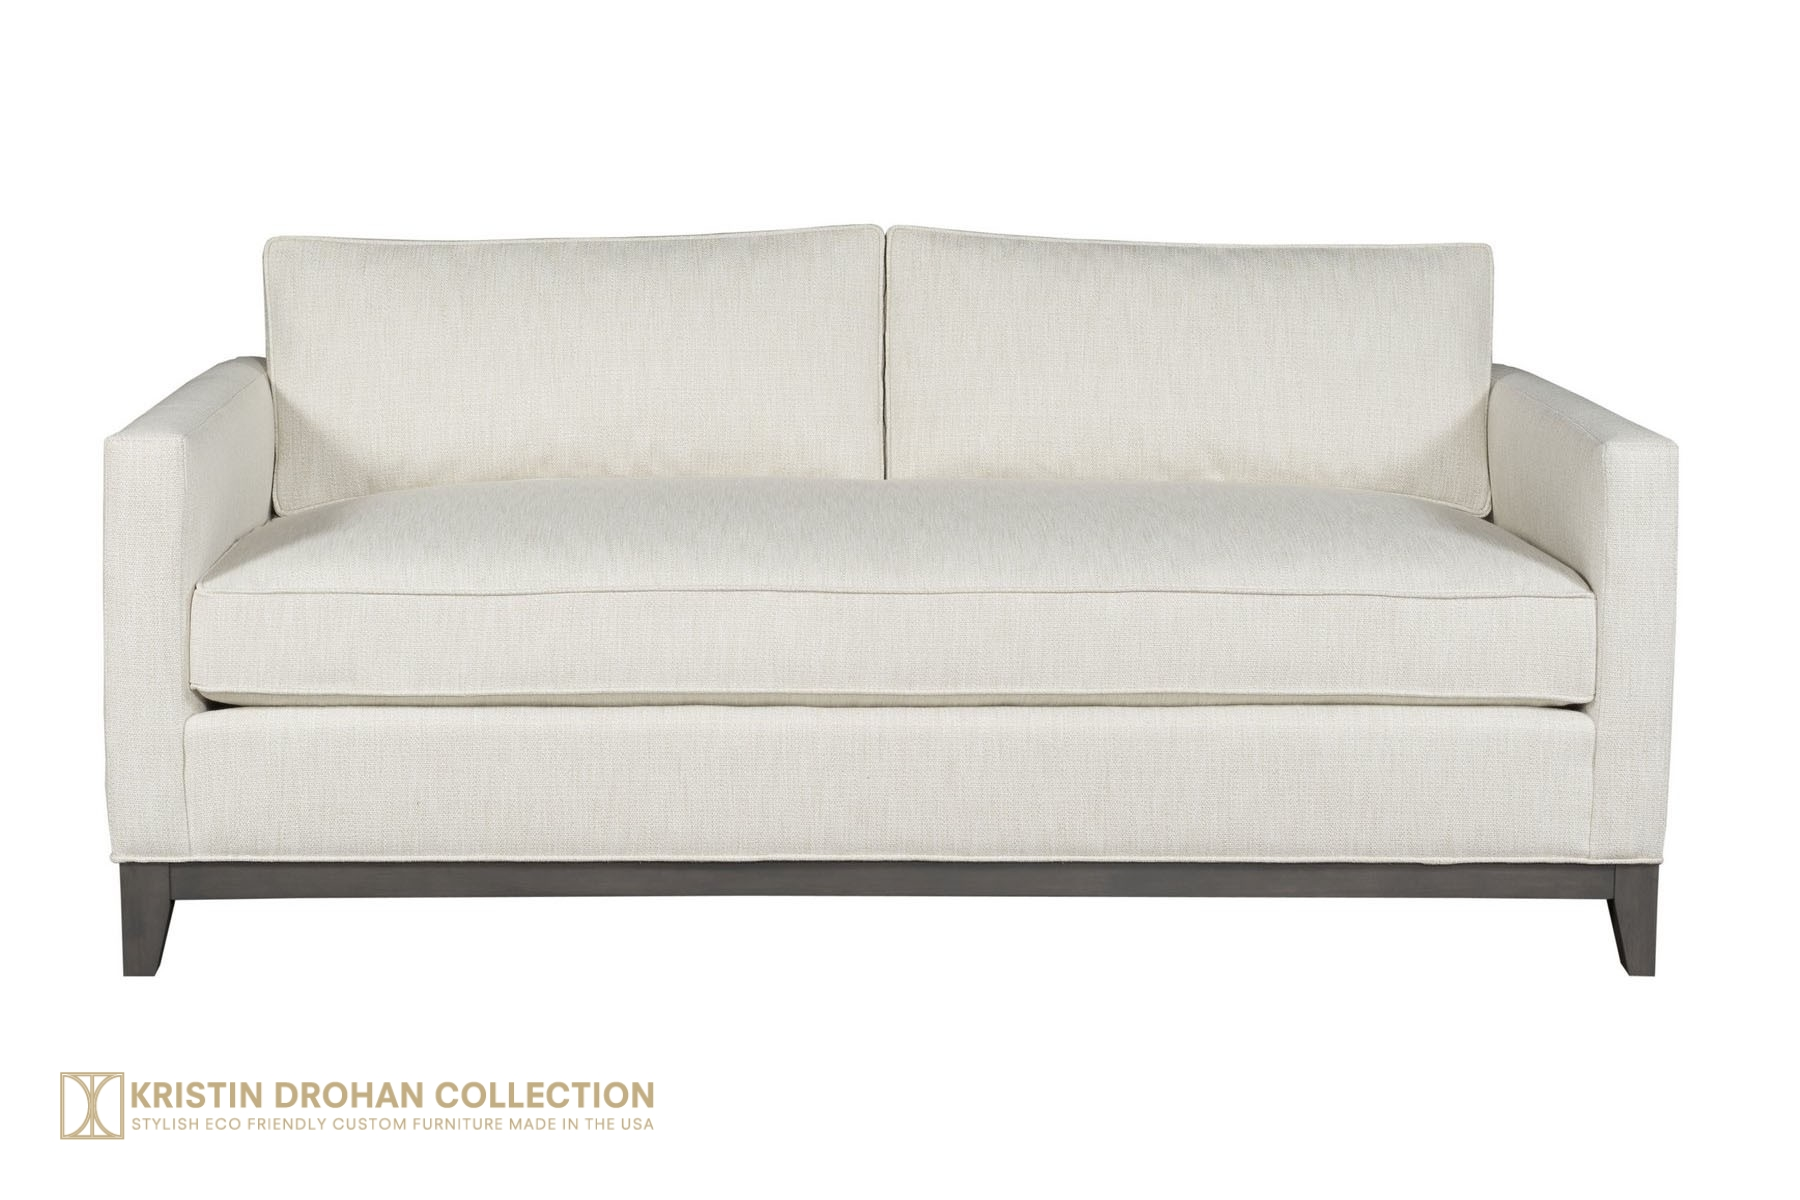 Keegan Sofa Chrom Granbury Ivory straight on